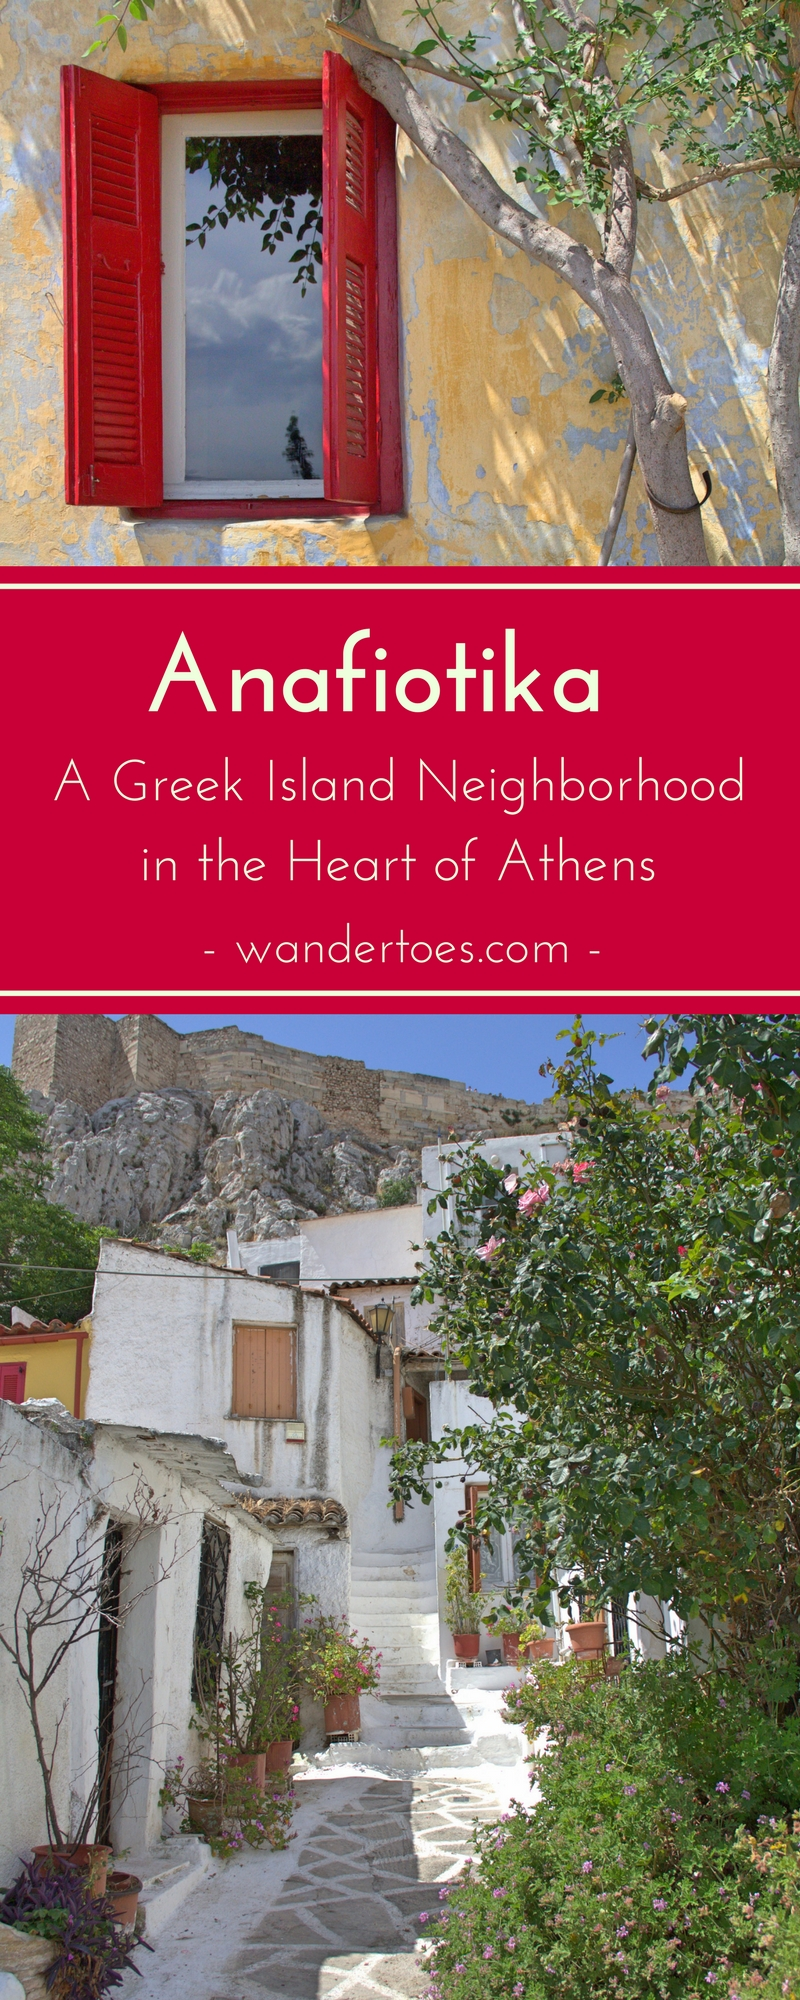 Anafiotika, Athens, Greece:  This incredibly photogenic neighborhood in the shadow of the Acropolis brings the feel of the Greek Island into the heart of Athens.